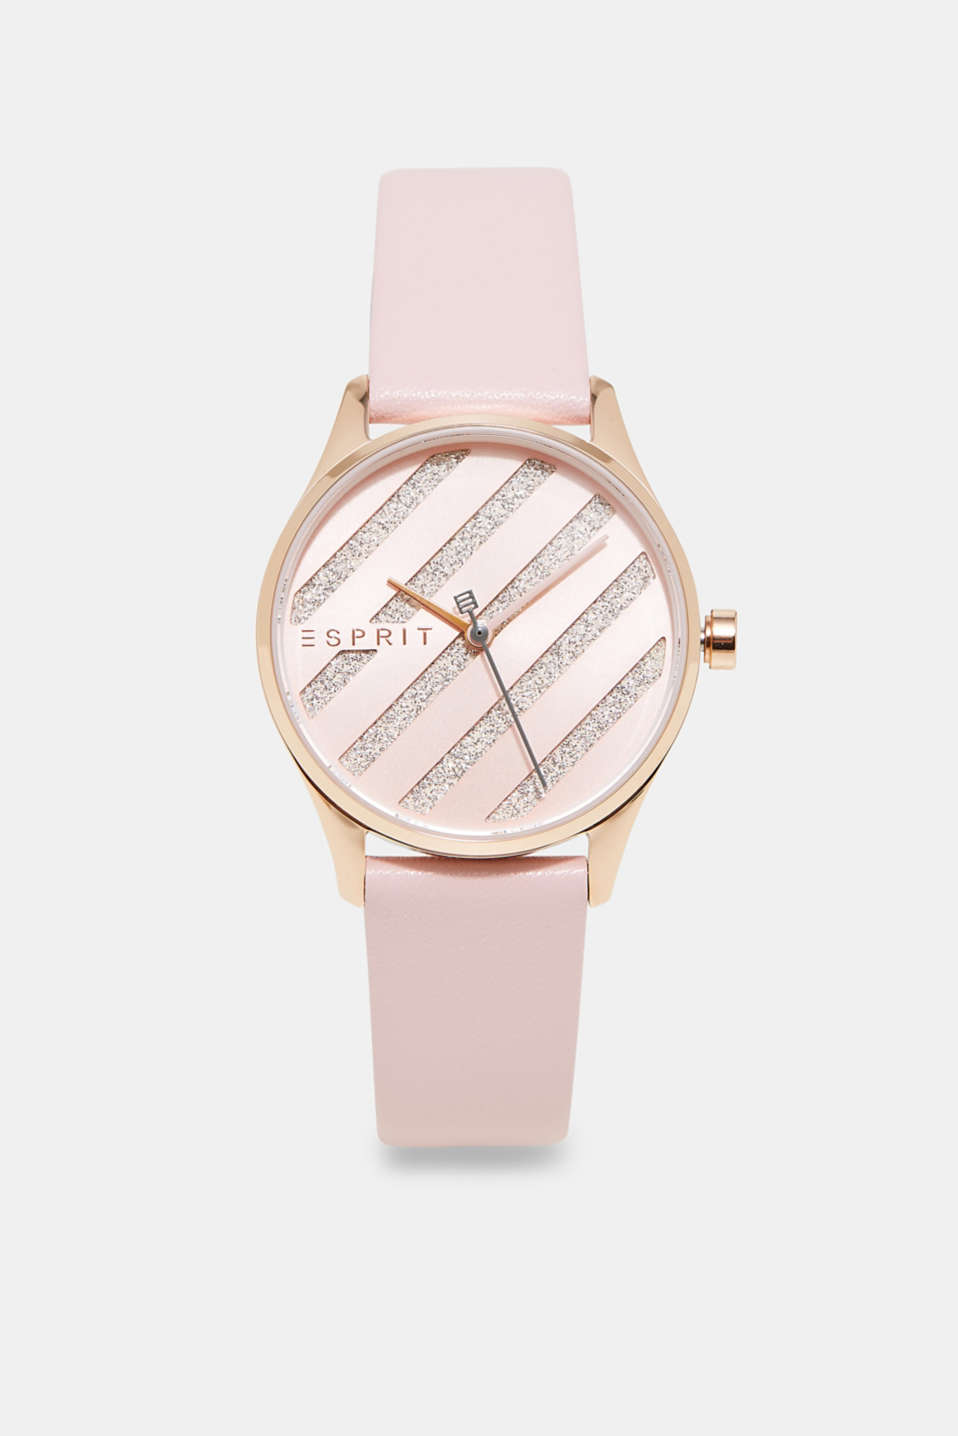 Esprit - Stainless steel with pink leather strap